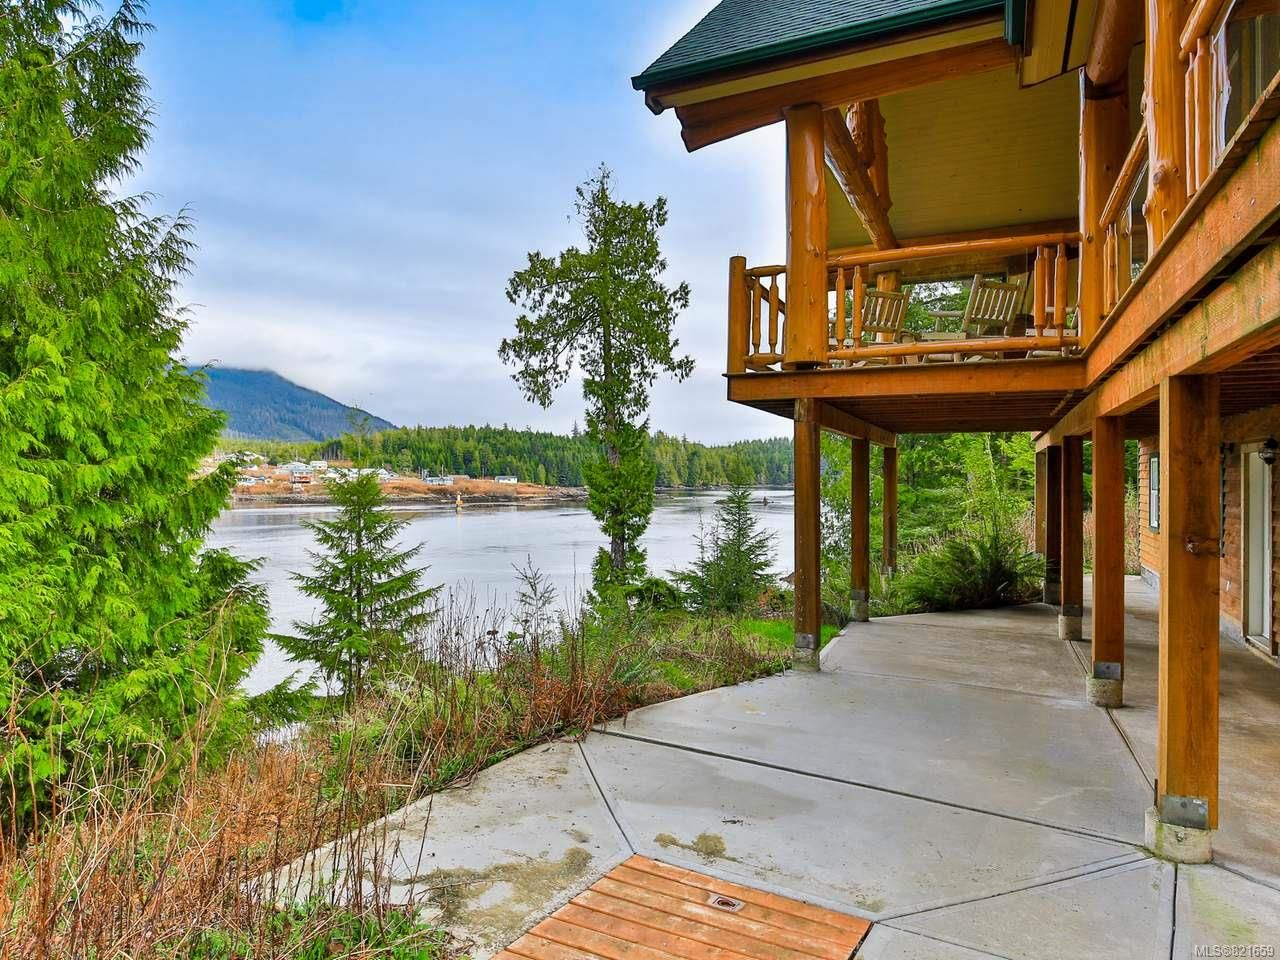 Photo 53: Photos: 1049 Helen Rd in UCLUELET: PA Ucluelet House for sale (Port Alberni)  : MLS®# 821659